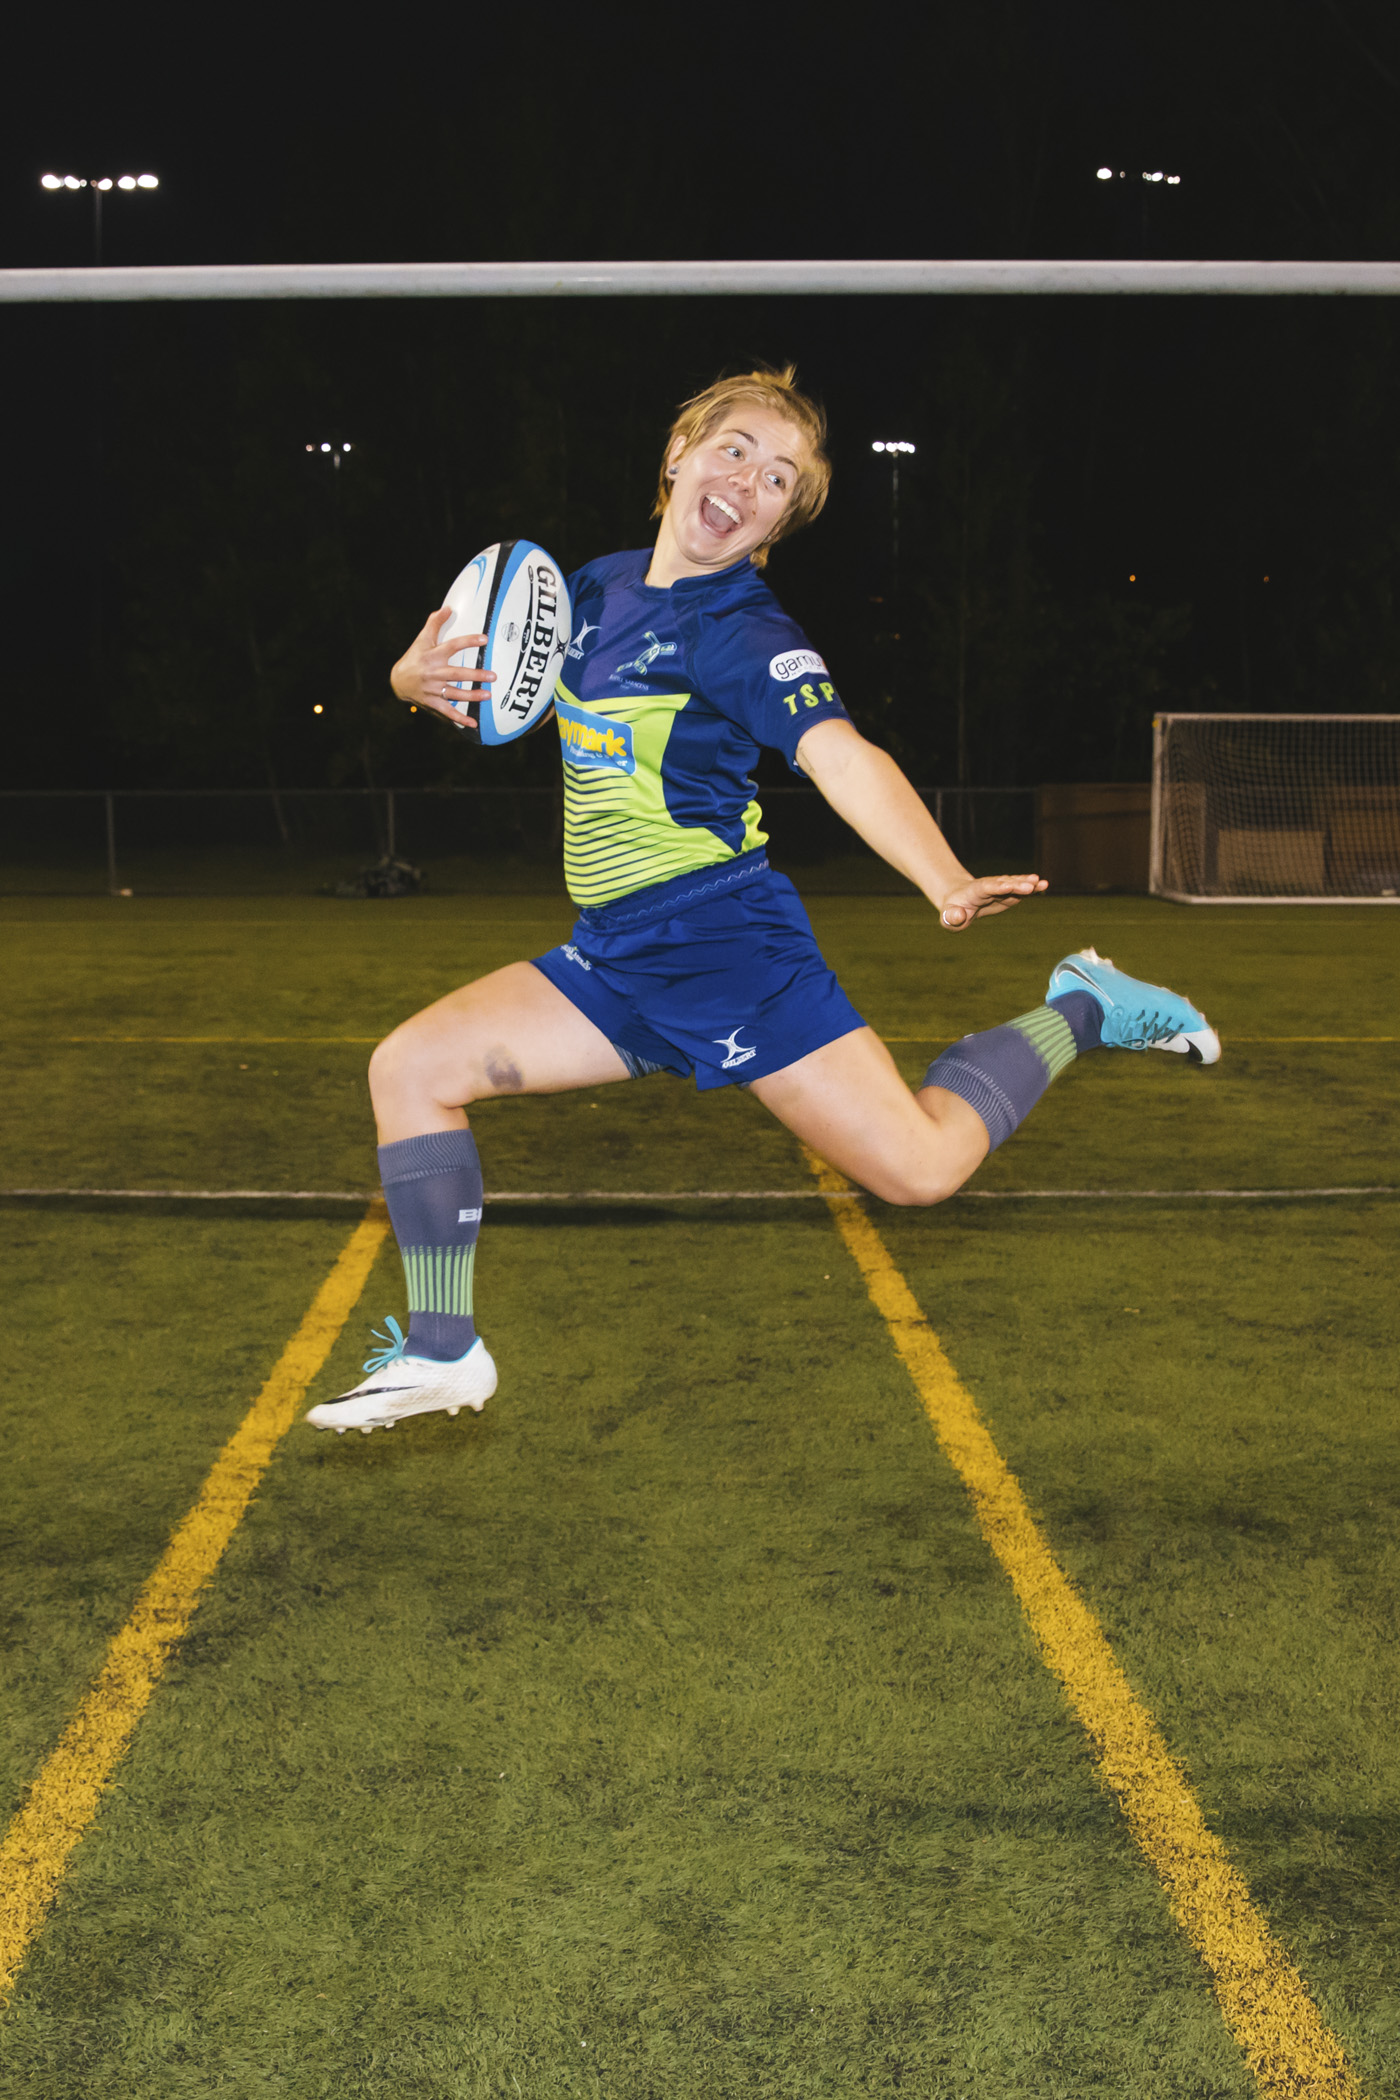 This is Anne! Anne is a flanker and her favorite snack is dinosaur egg oatmeal (WOW WHO ELSE FORGOT ABOUT THAT MAGICAL SNACK) and her favorite adult beverage is a gin and tonic. (Image: Sunita Martini / Seattle Refined).